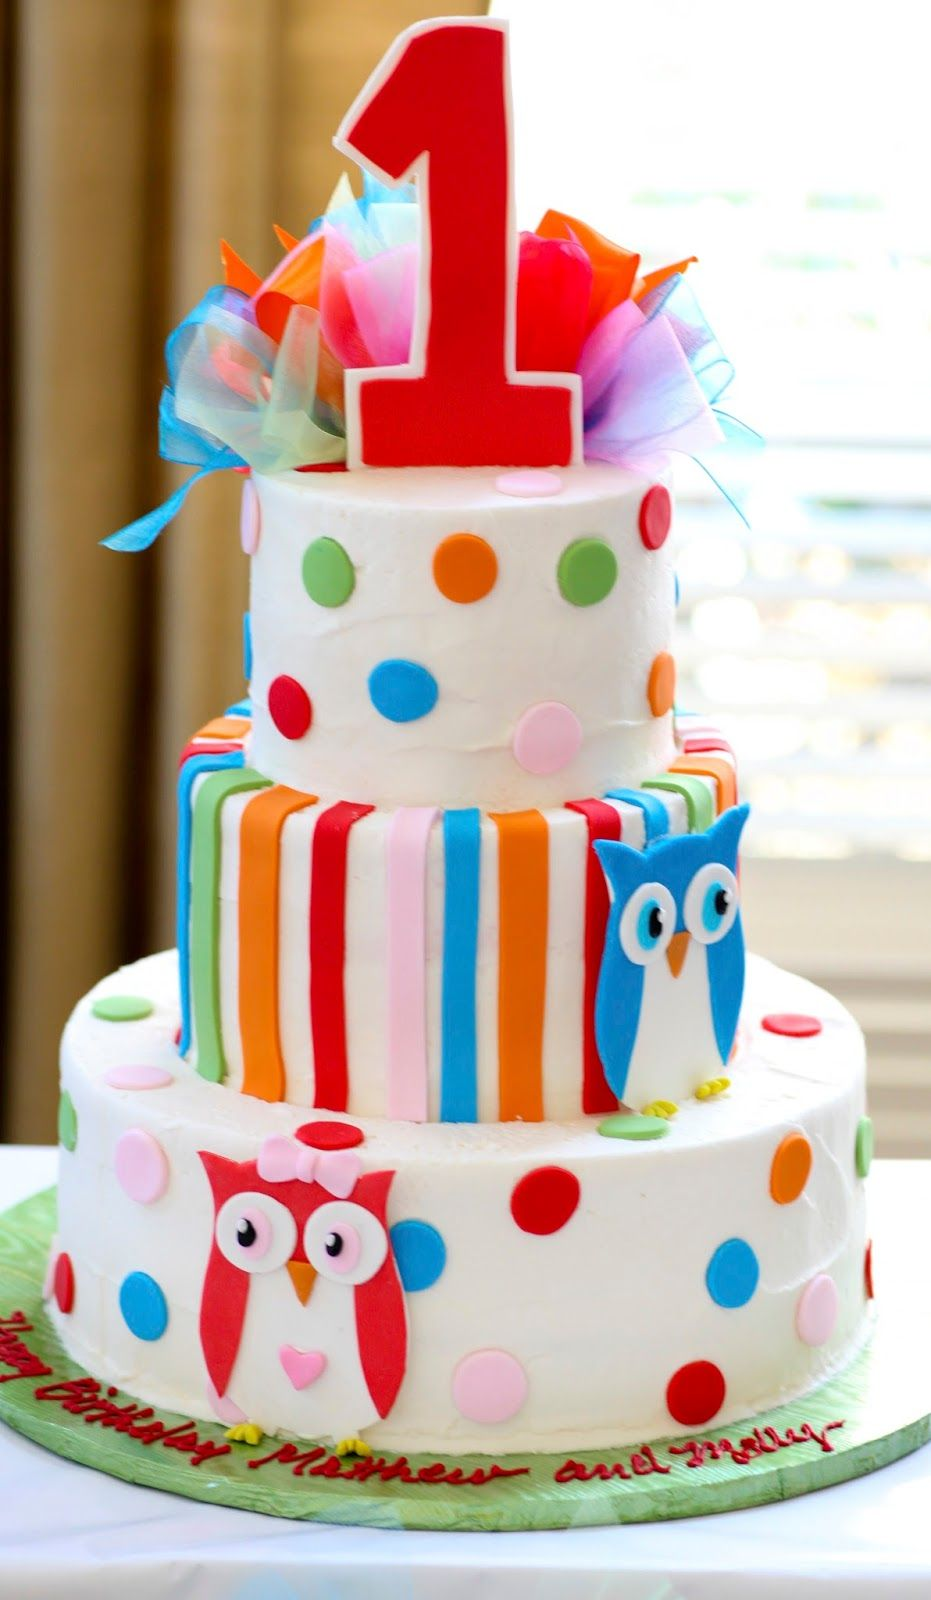 Cake Images For Twins : Twins First Birthday Cake Ideas ... birthday banner a ...